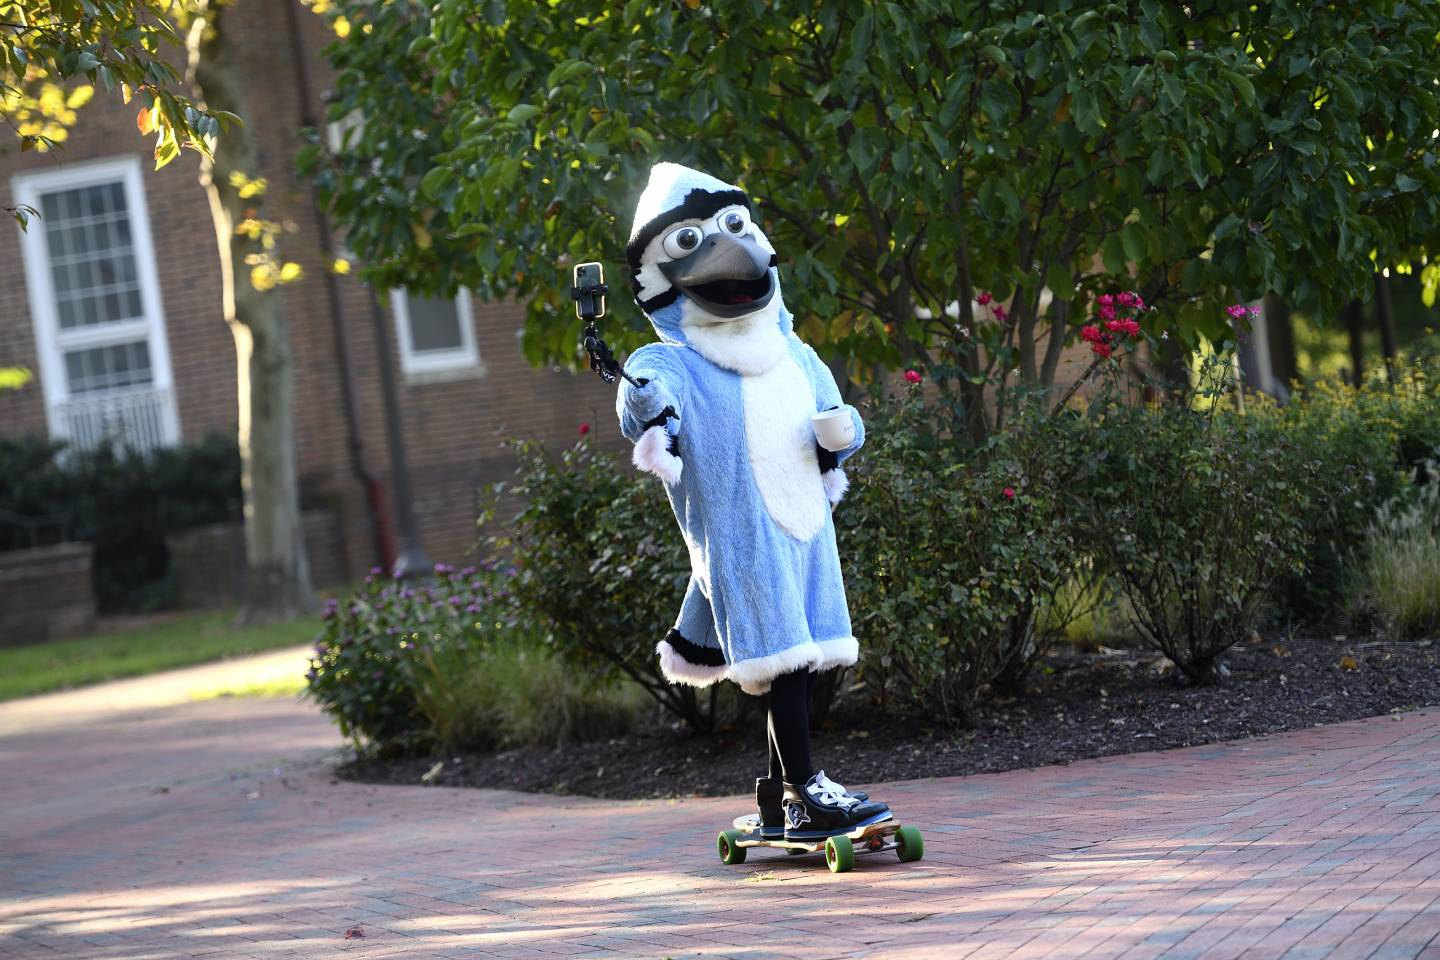 Hopkins Blue Jay skateboards with a coffee and selfie stick